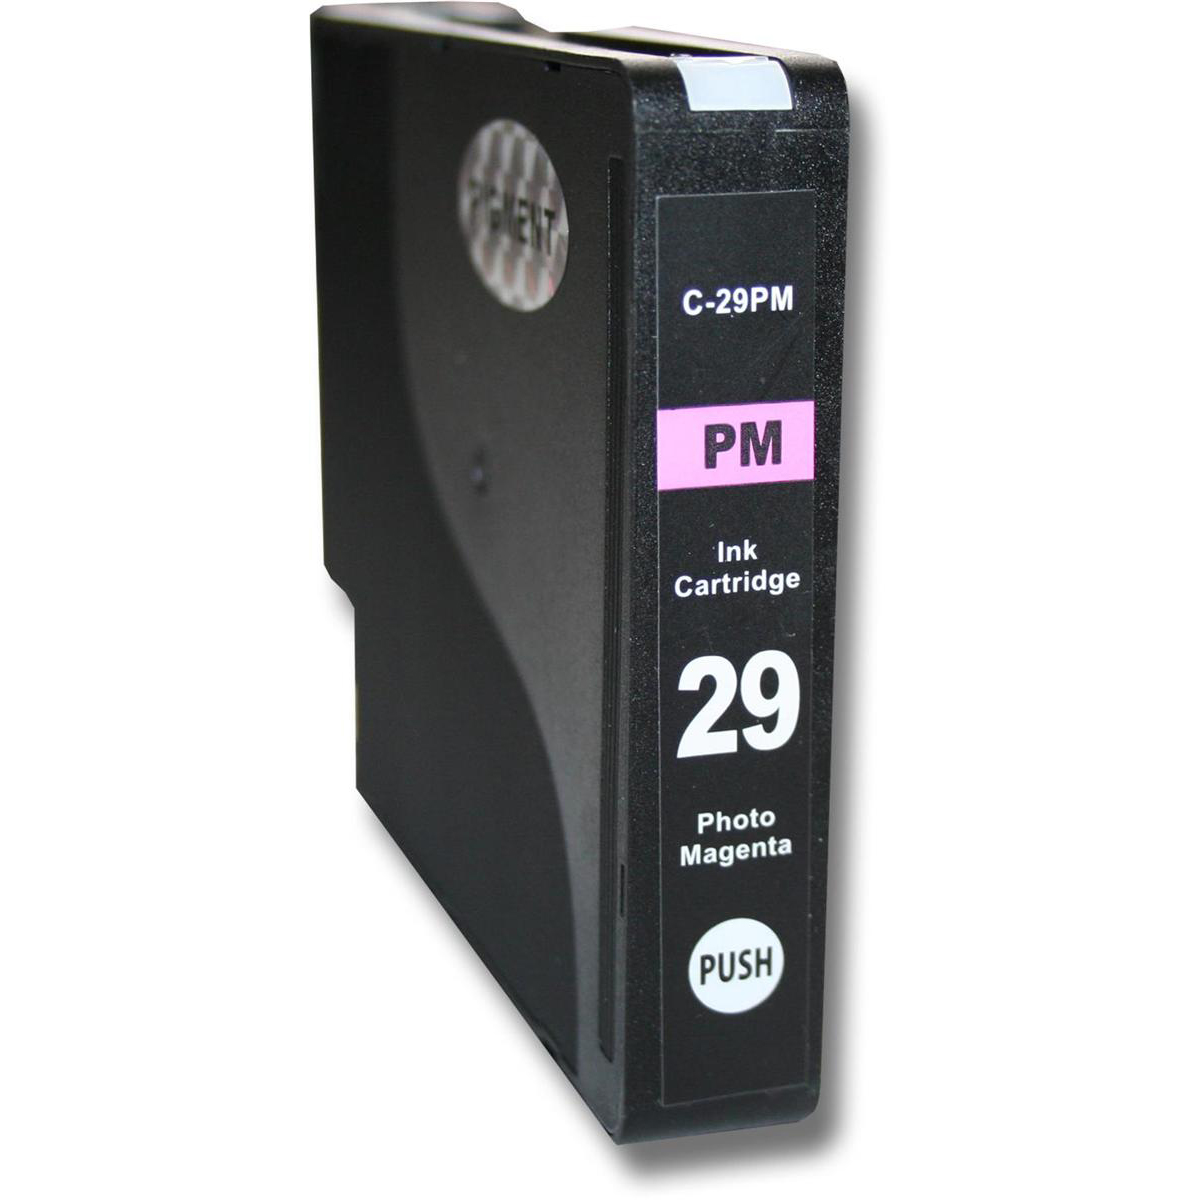 Inkjet Cartridges Canon PGI-29PM Photo Inkjet Cartridge 1055 photos Magenta Ref 4877B001 *3to5 Day Leadtime*